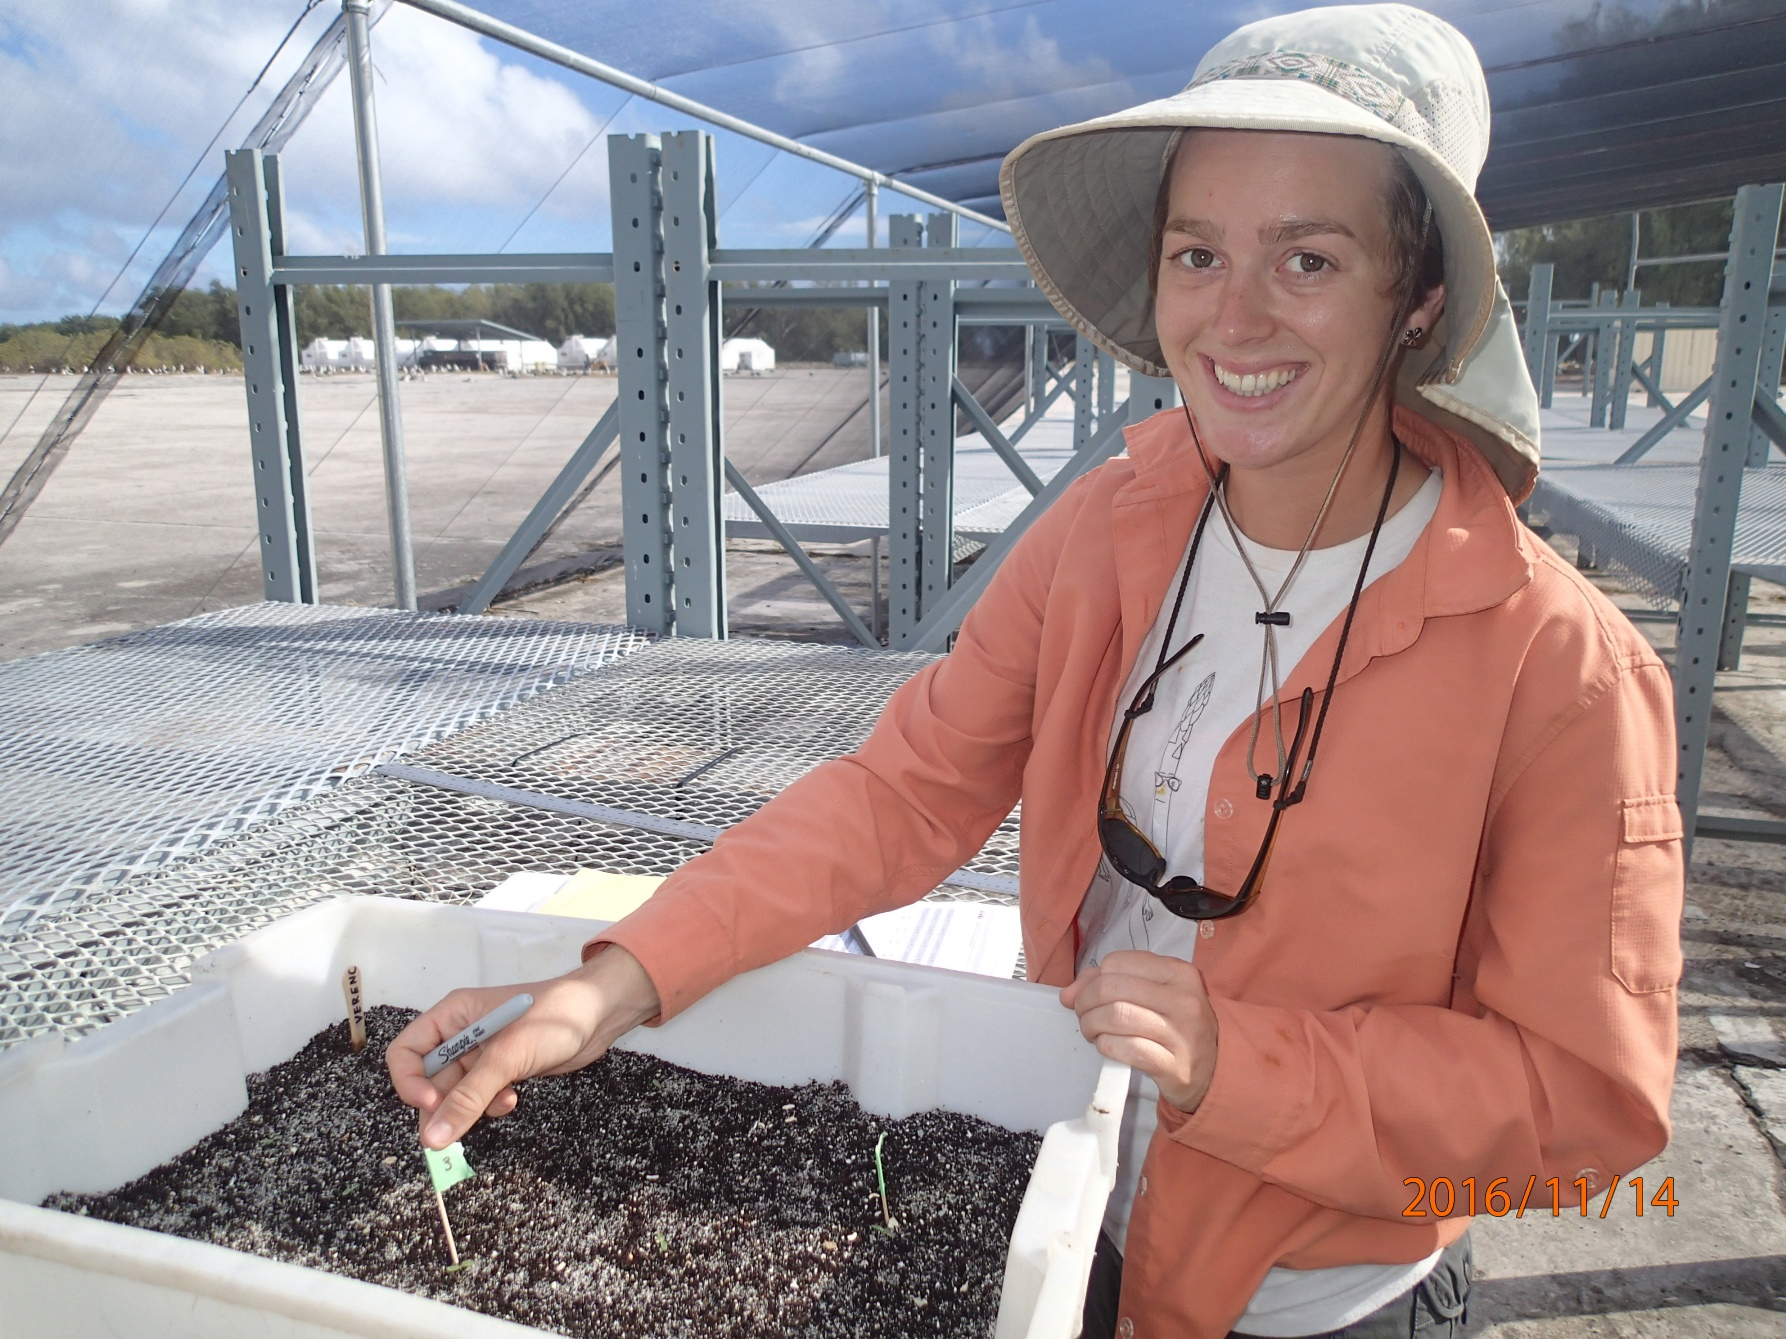 Wieteke Holthuijzen with plant tray at Midway Atoll National Wildlife Refuge